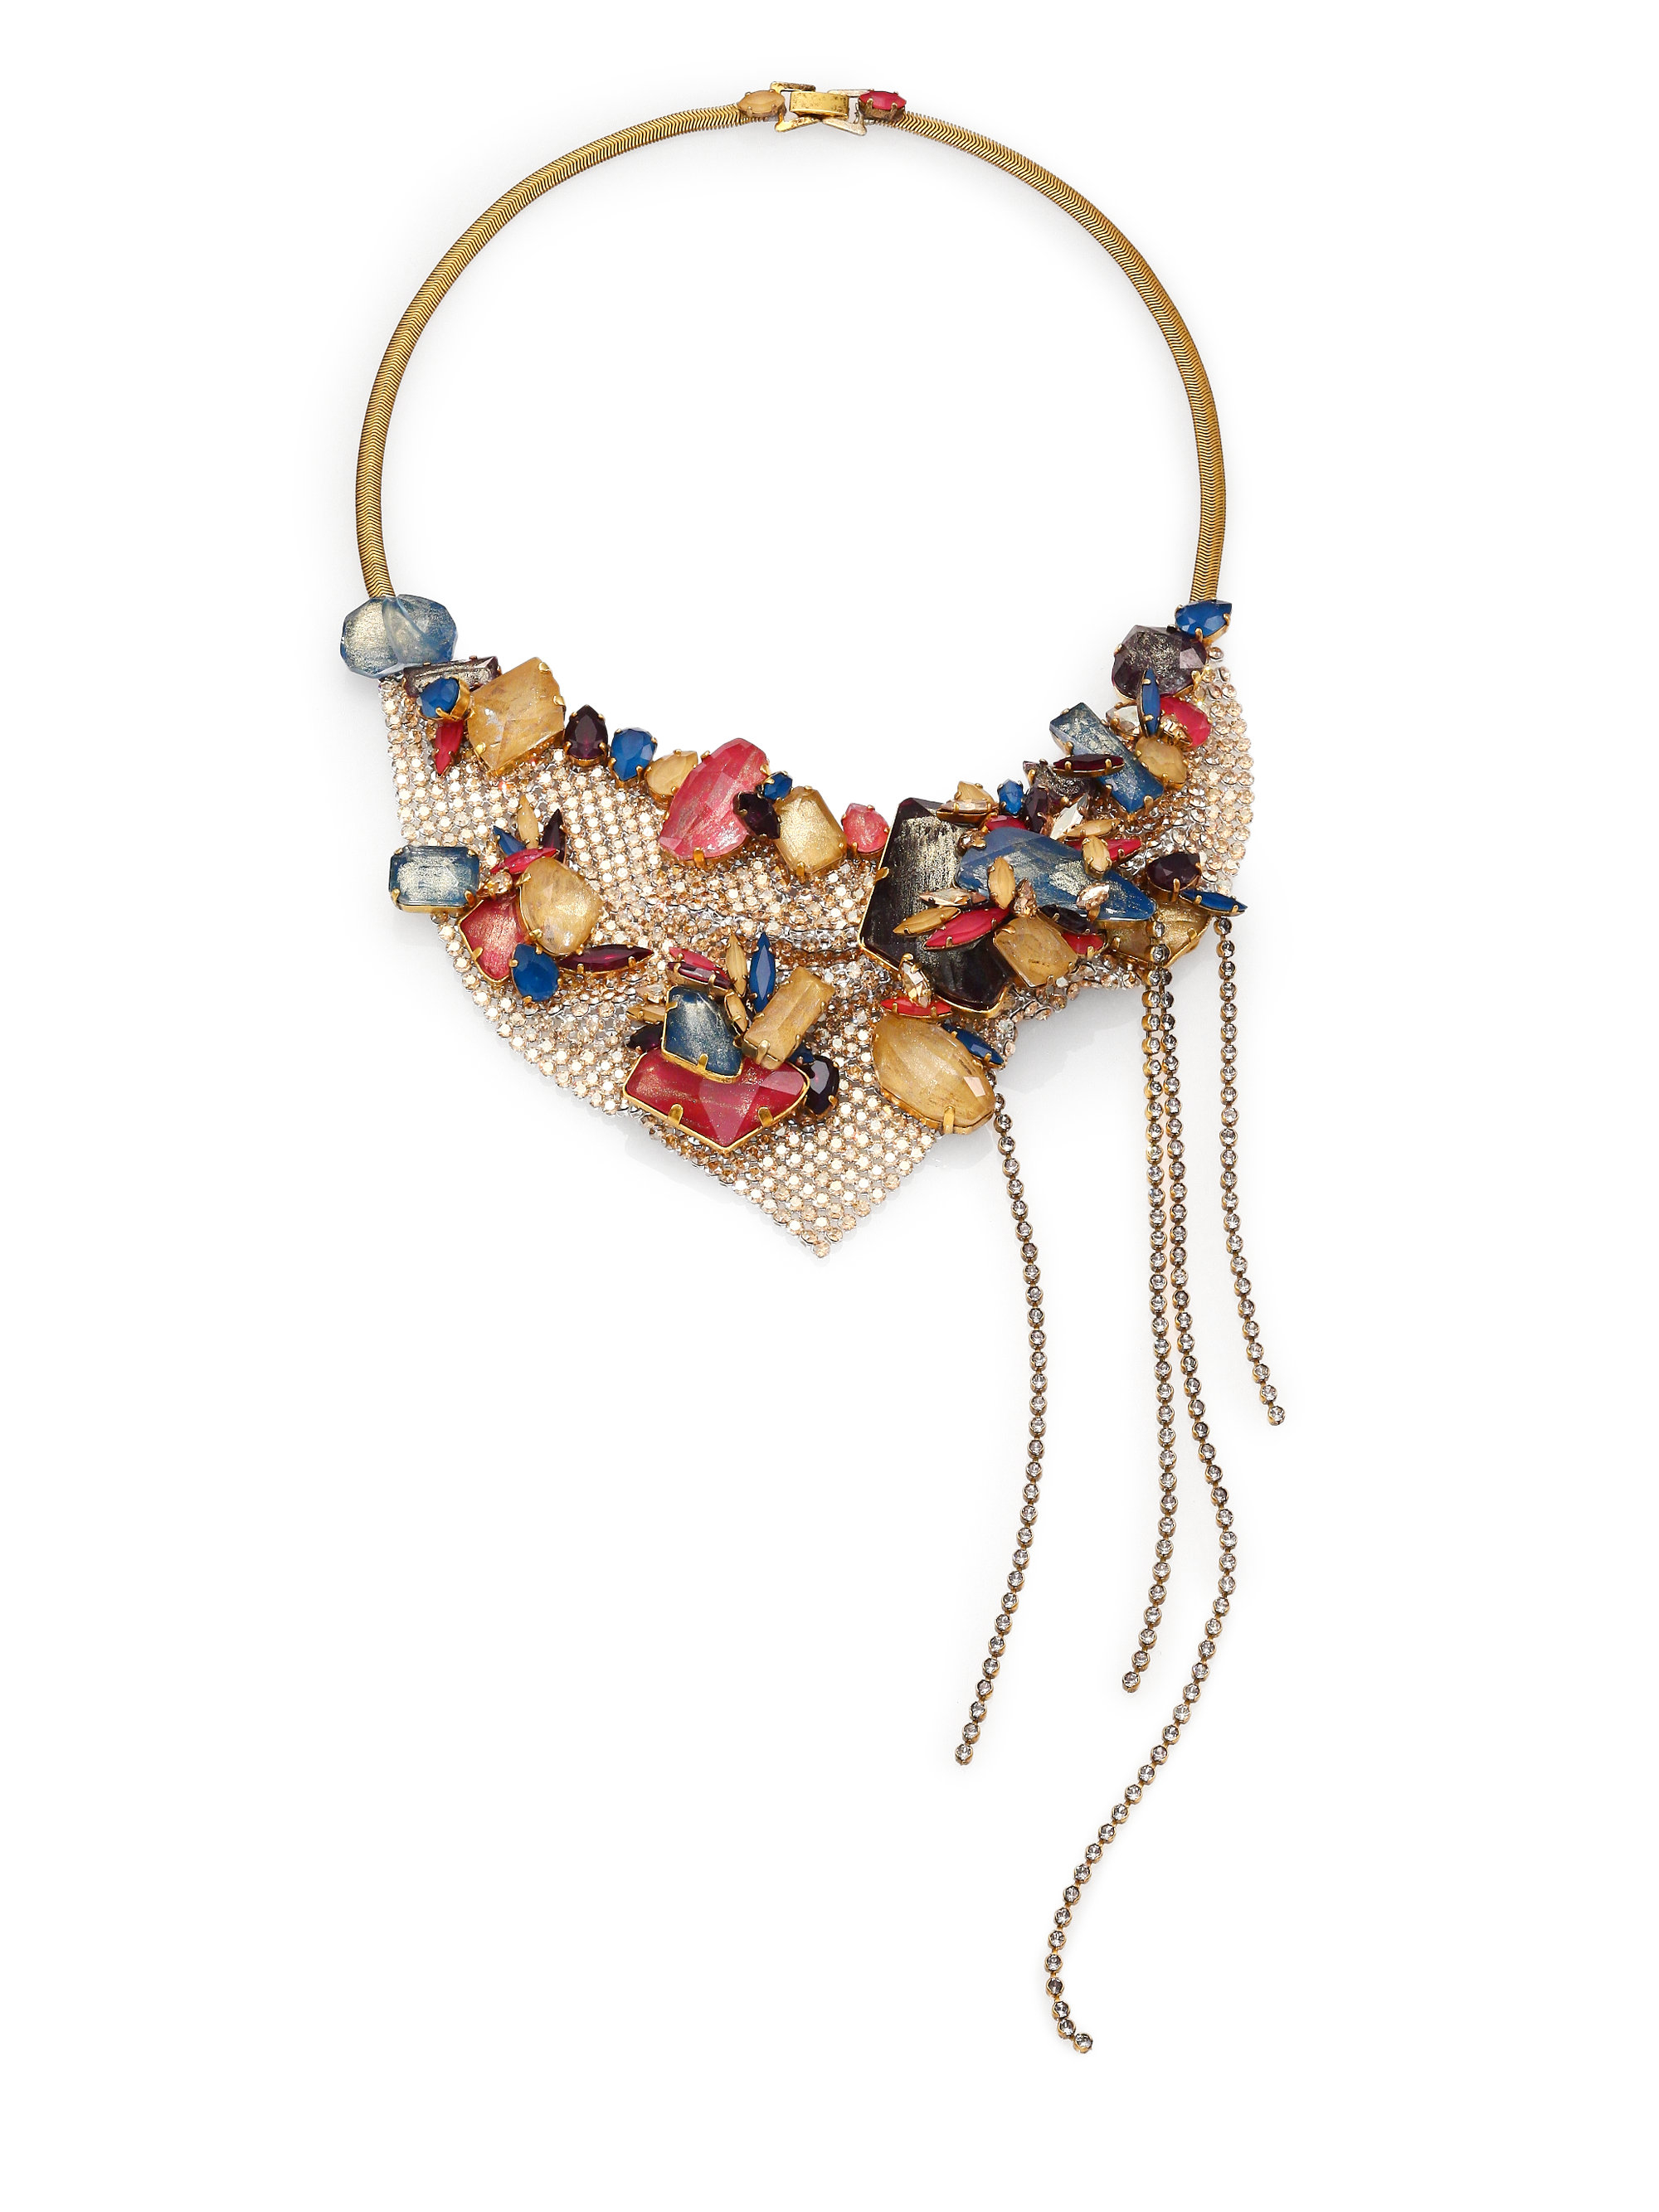 Set furthermore Id J 1160882 moreover Thing additionally Beat The Heat This Outfit likewise Thing. on oscar de la renta tassel necklace